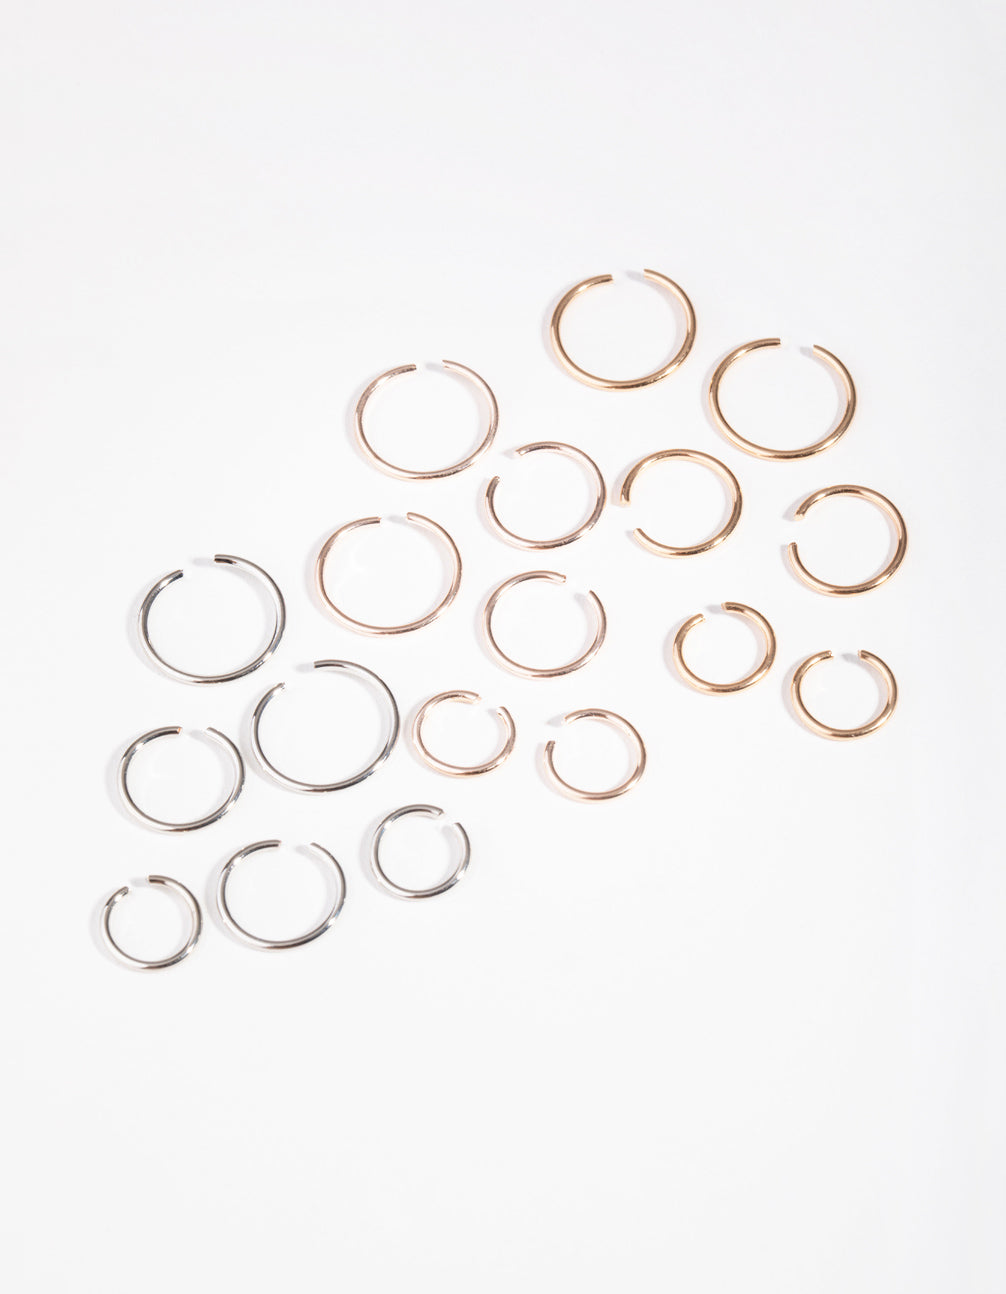 Mixed Metals Ball End Pack Faux Rings